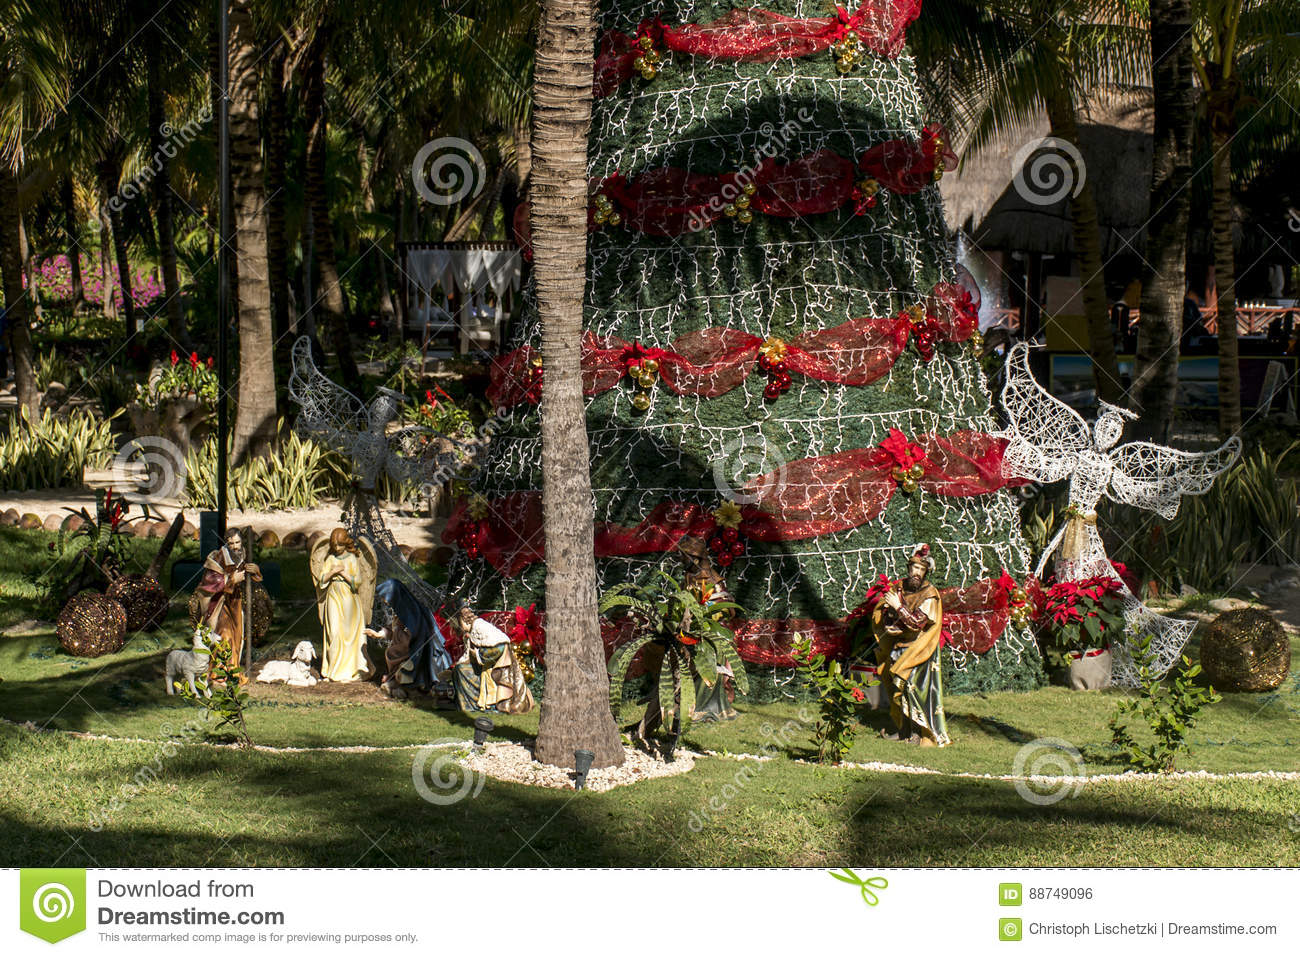 Christmas In Cancun.Public Christmas Tree With Red Band Between Palms In Sun In